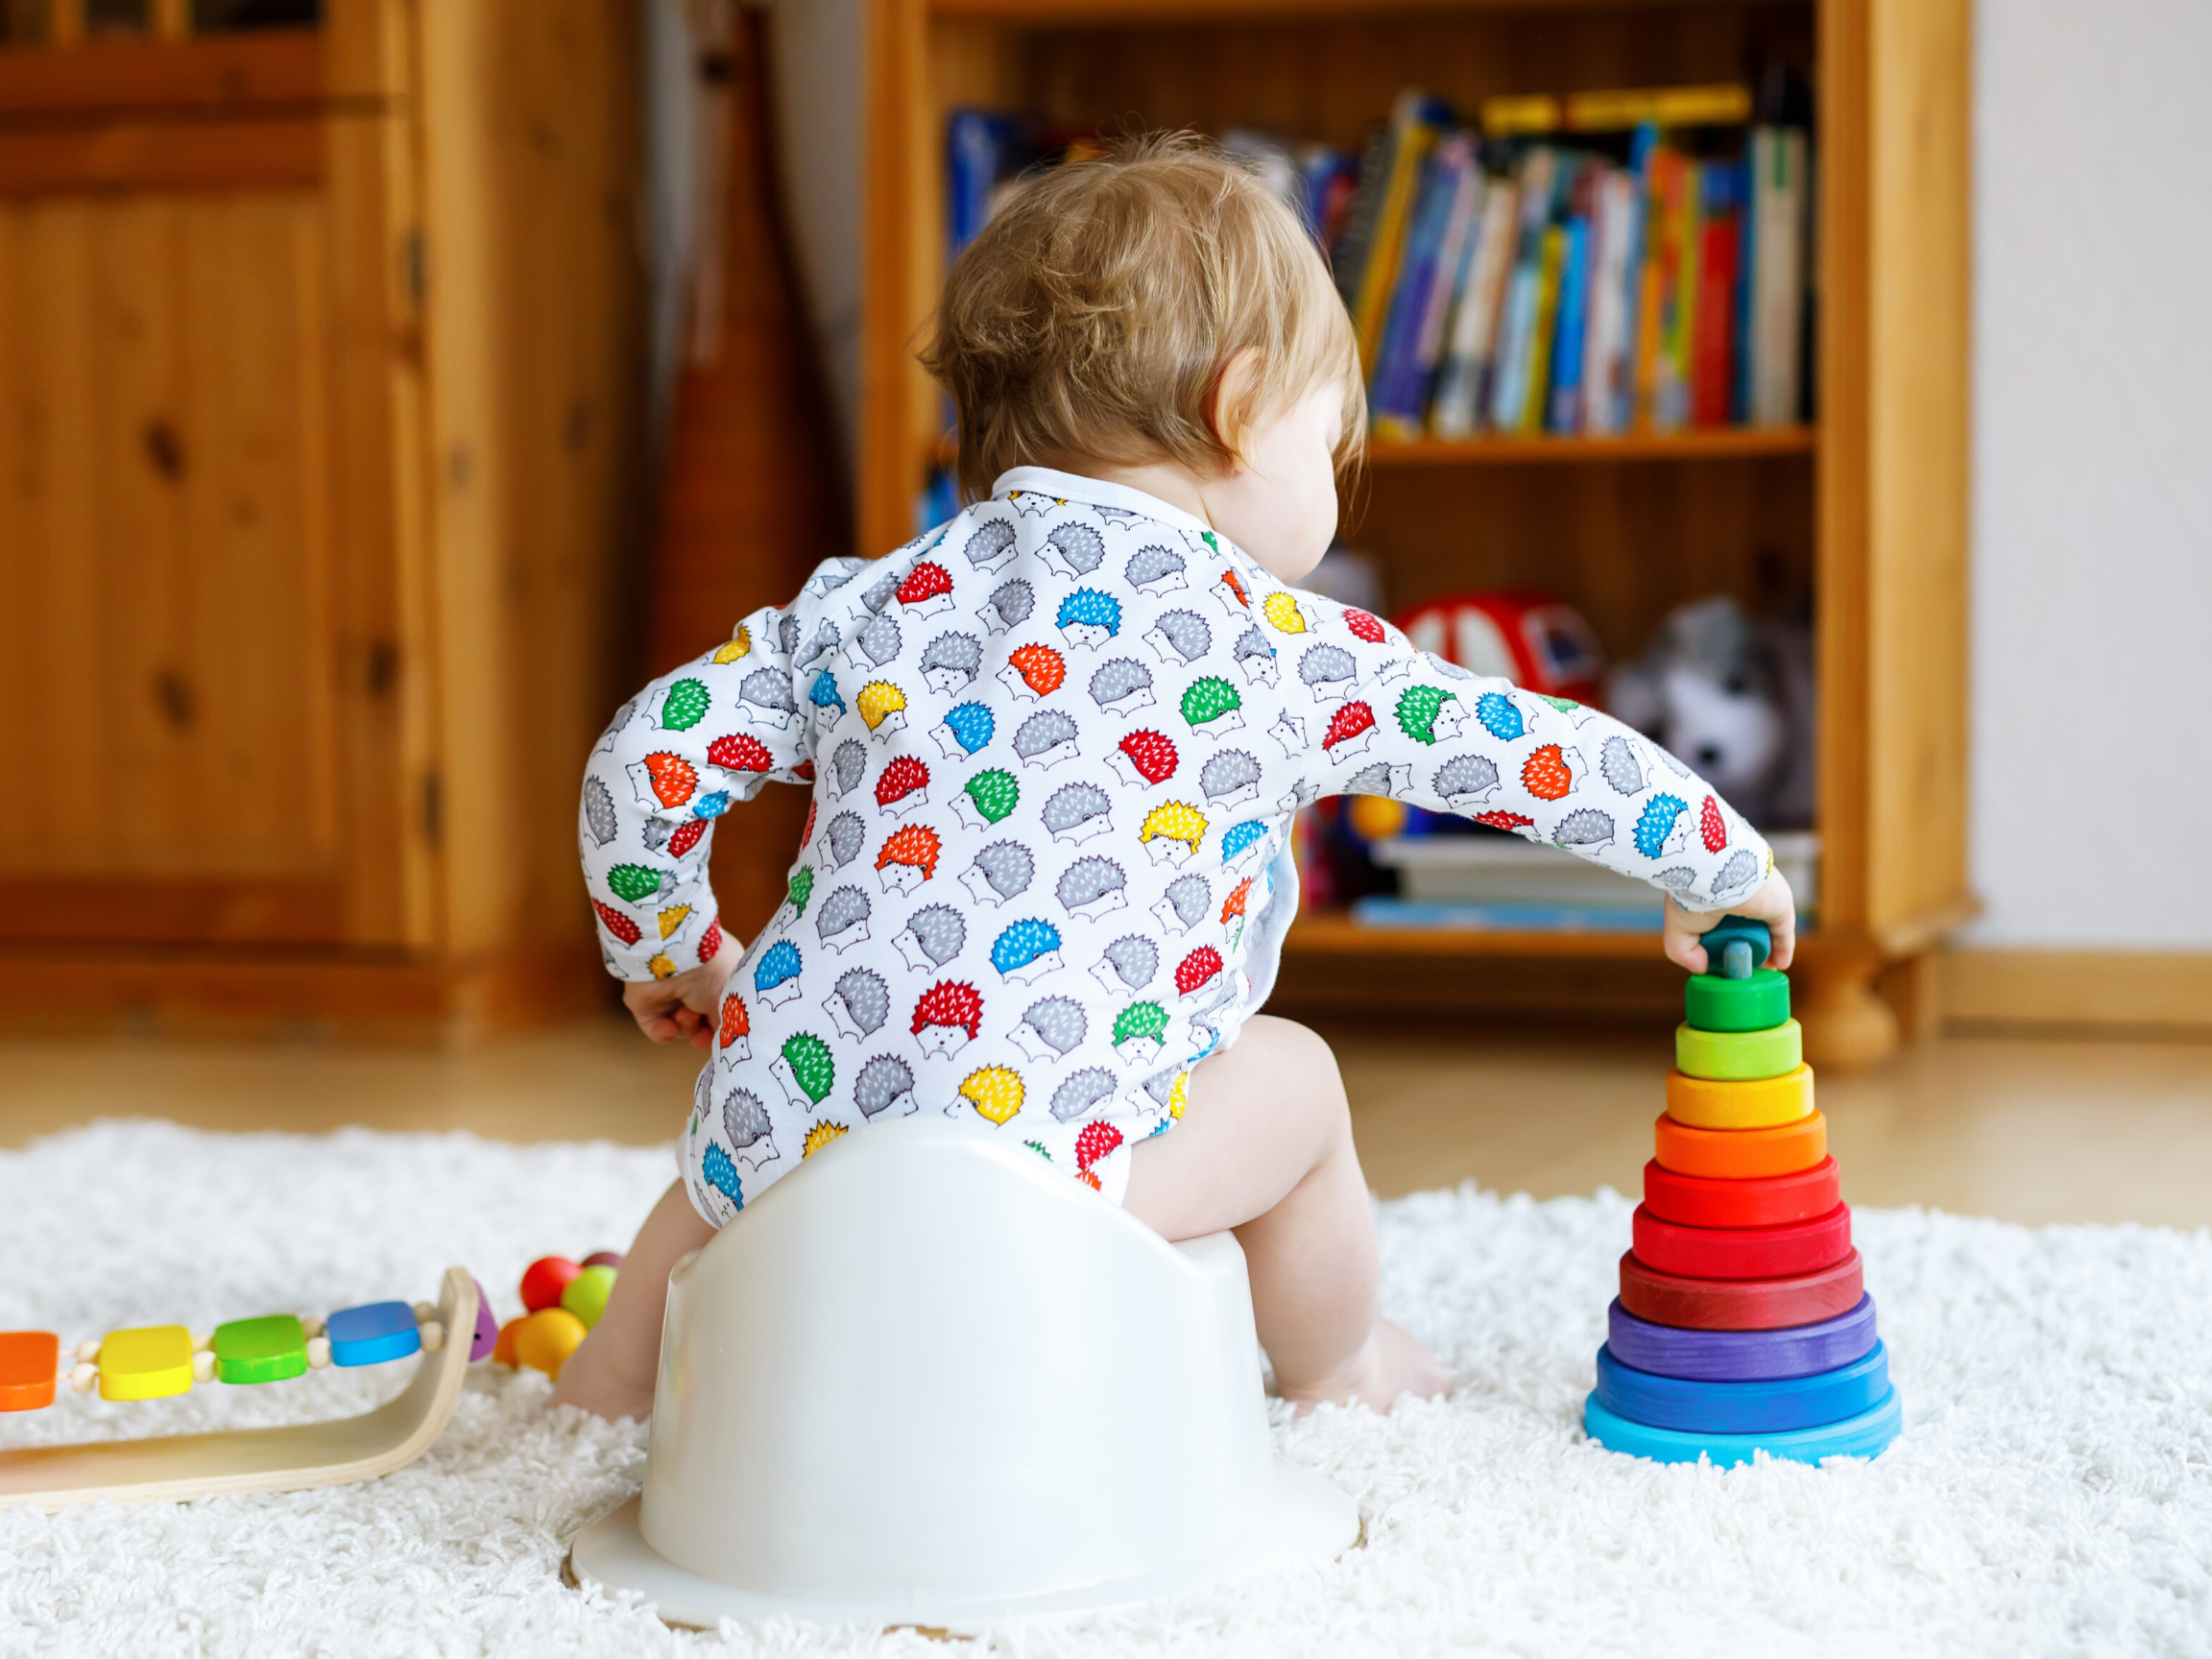 Toddler potty training and playing with toys in the living room